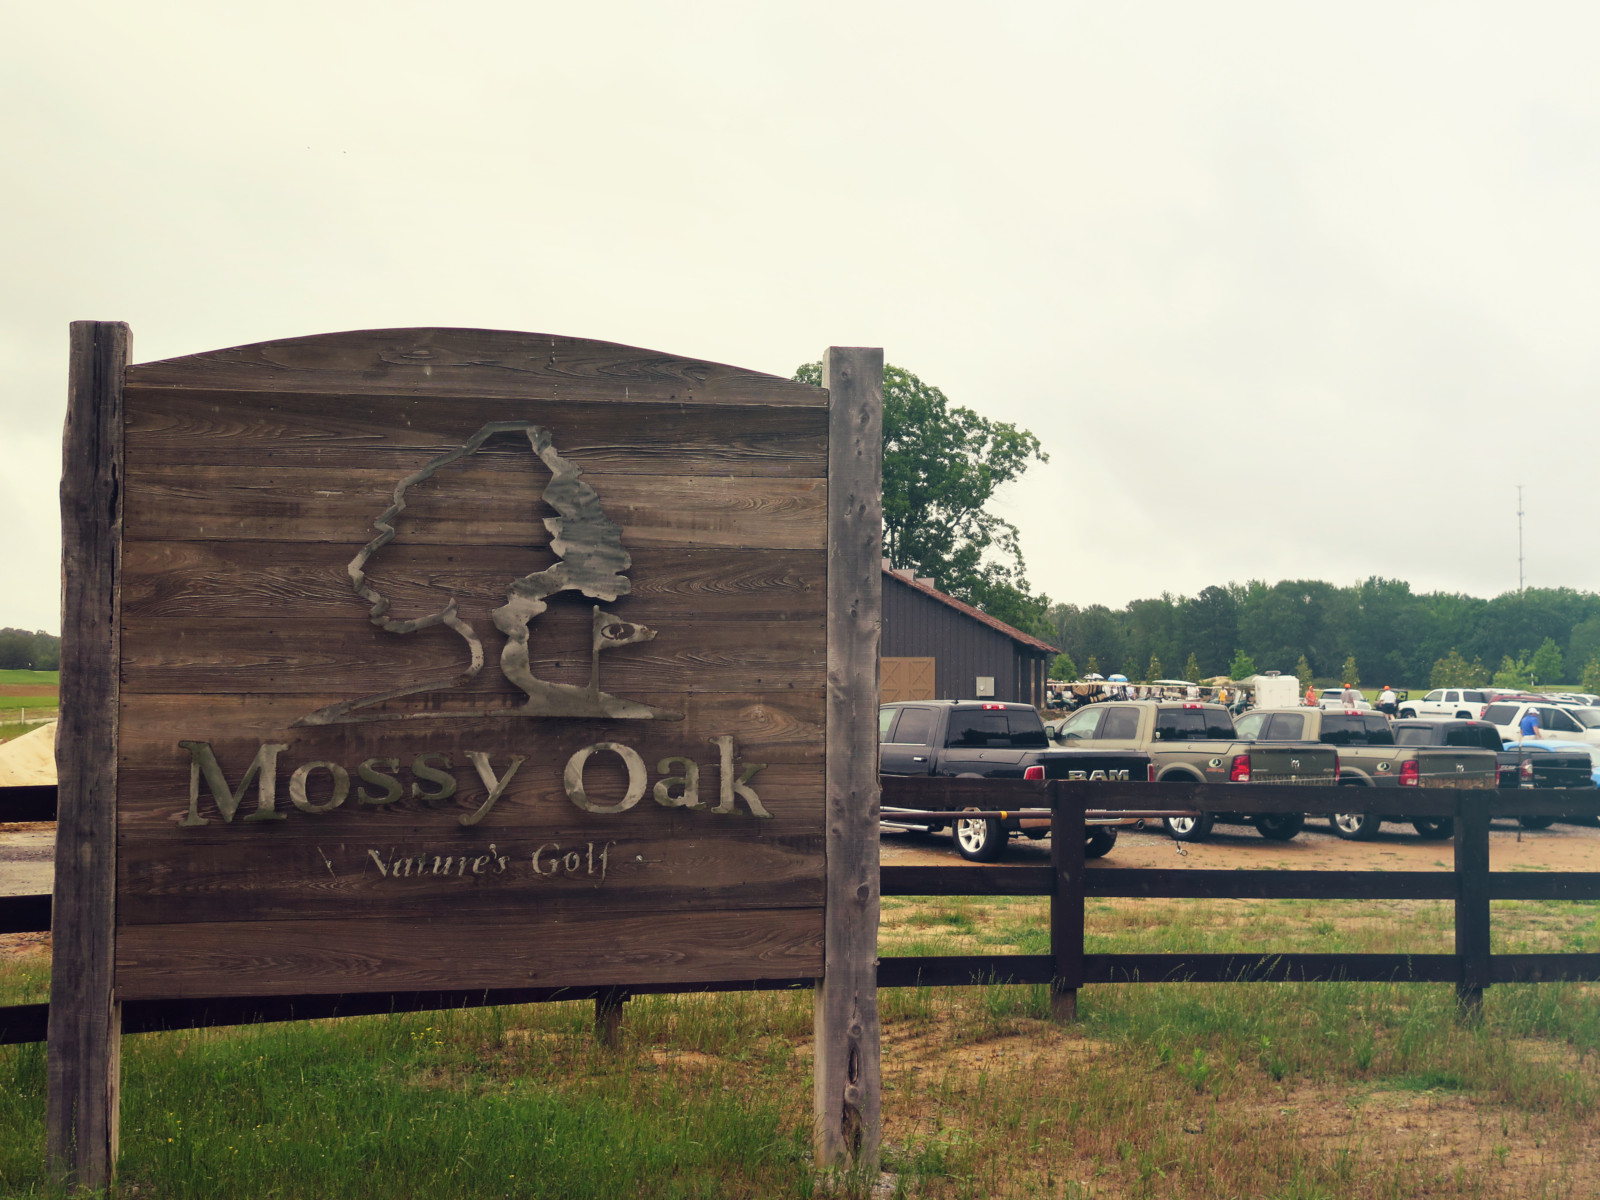 mossy oak nature's golf sign